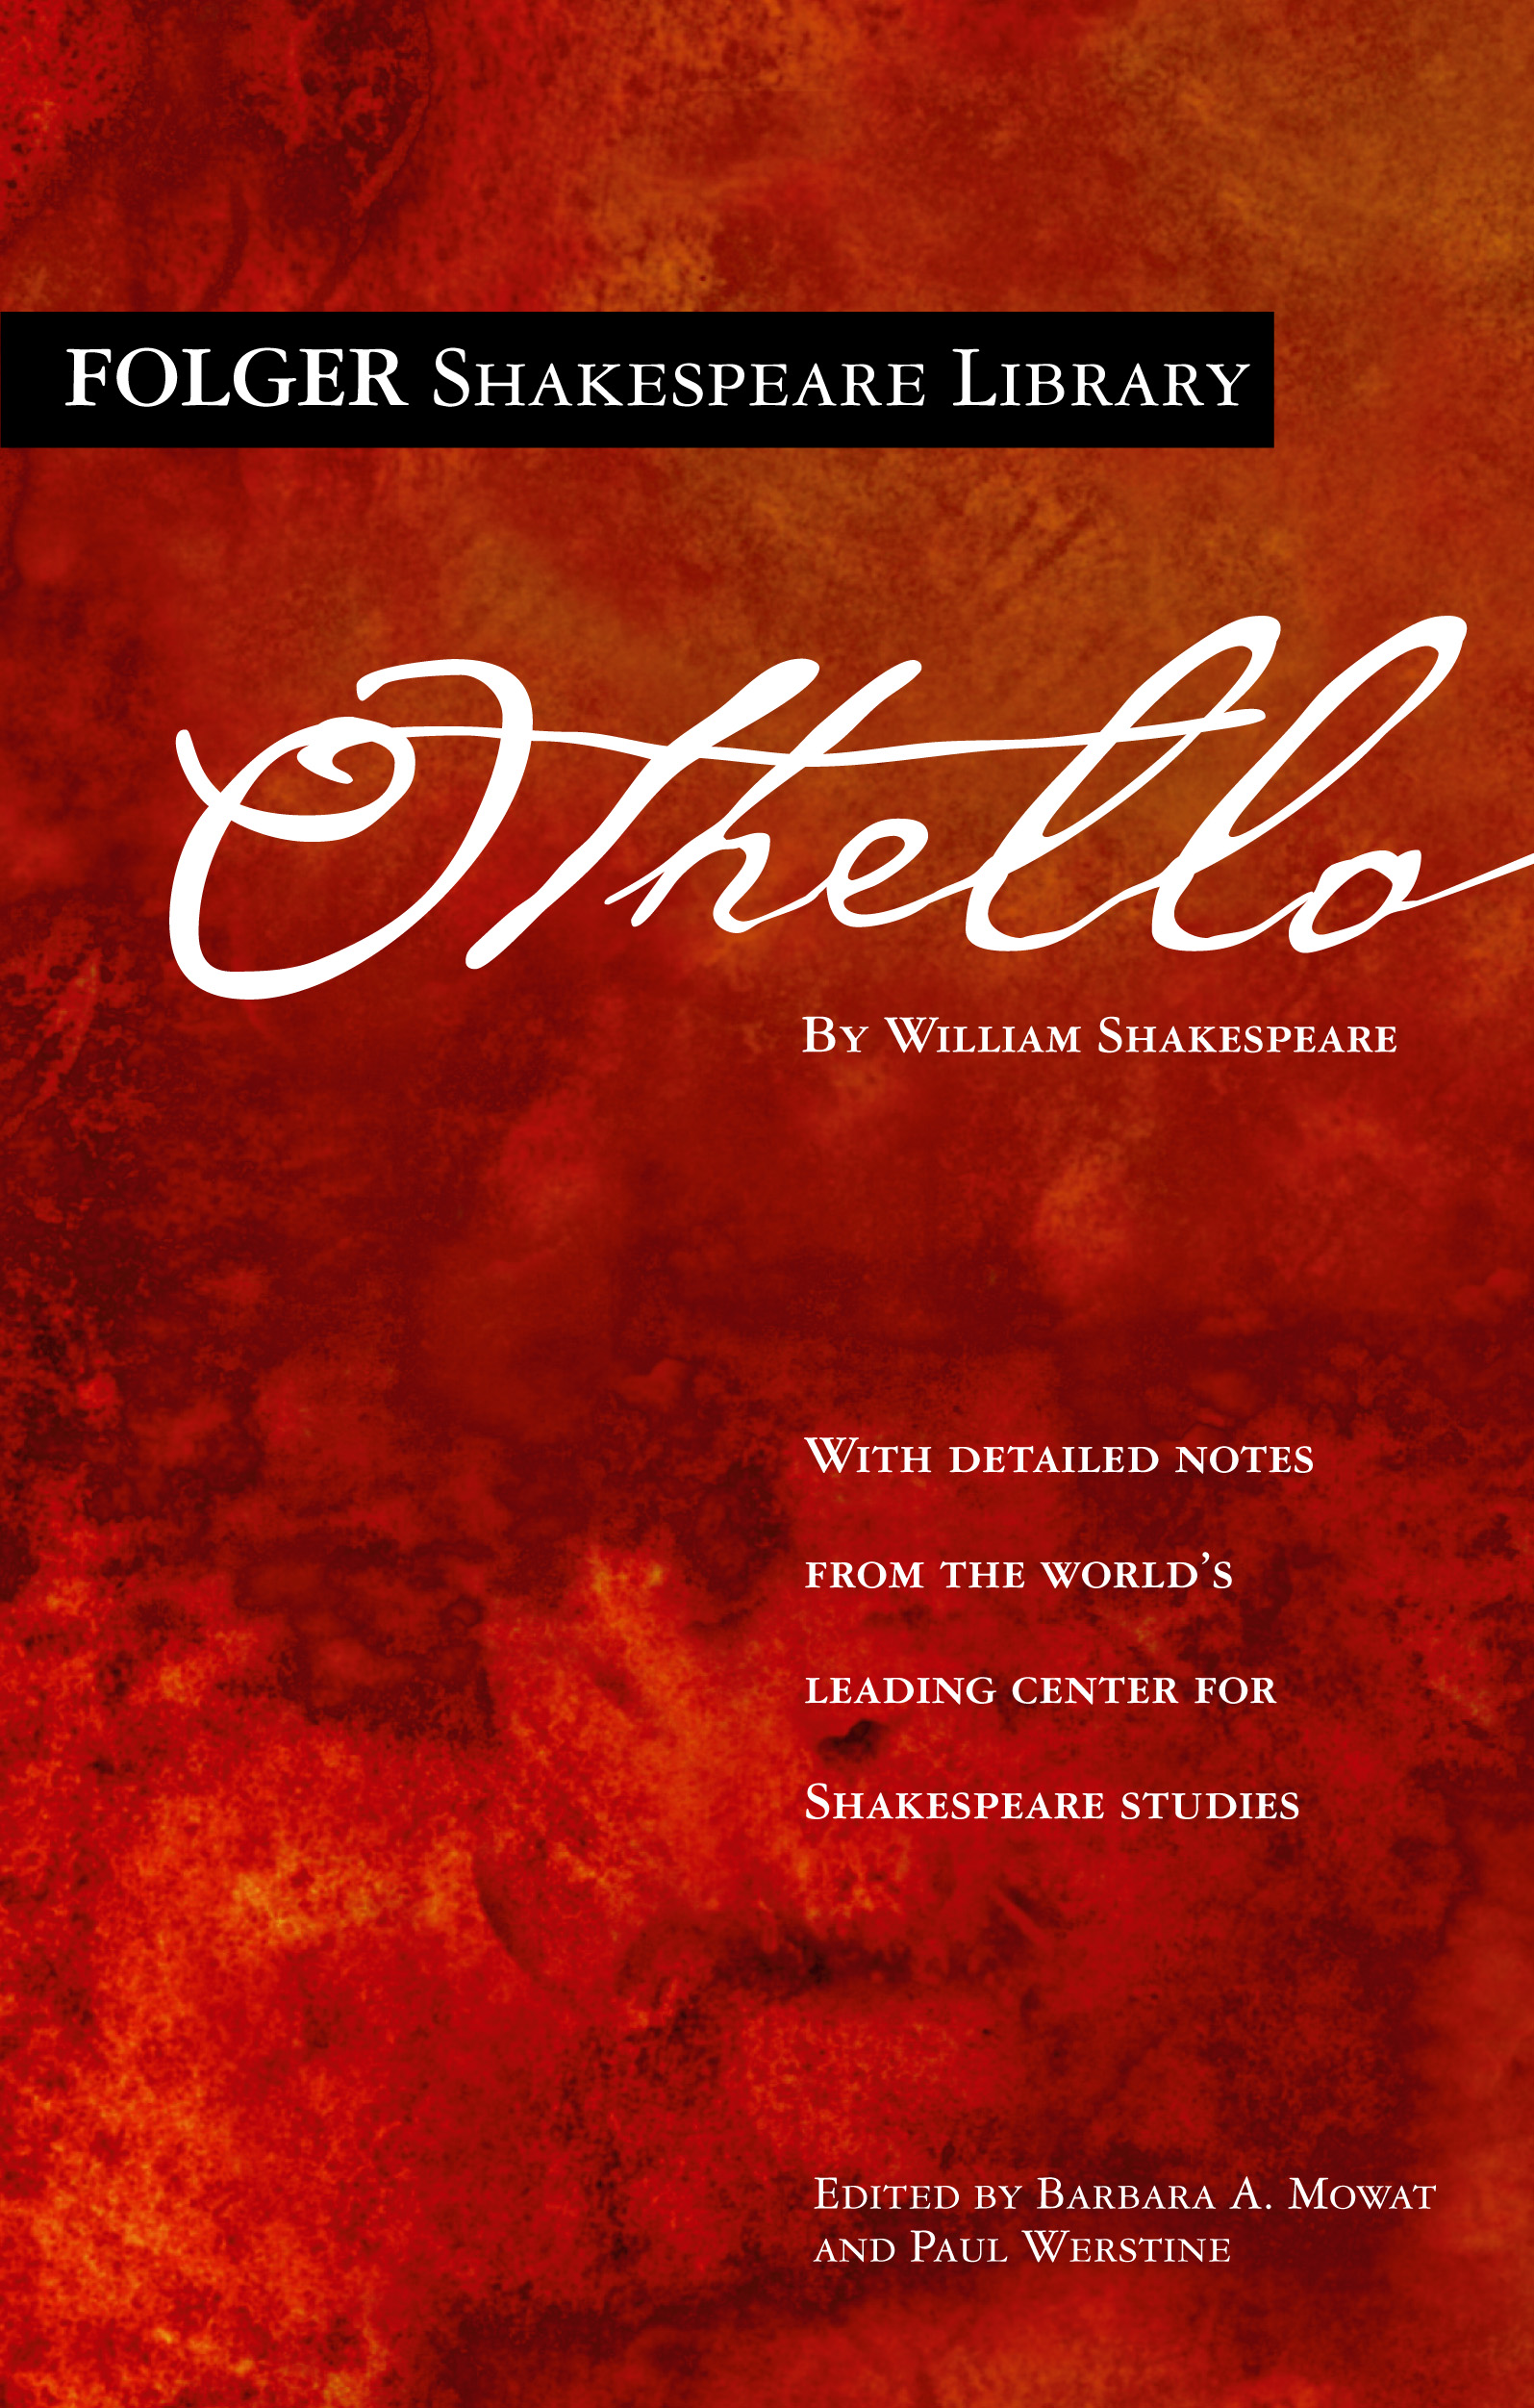 A response to othello by william shakespeare